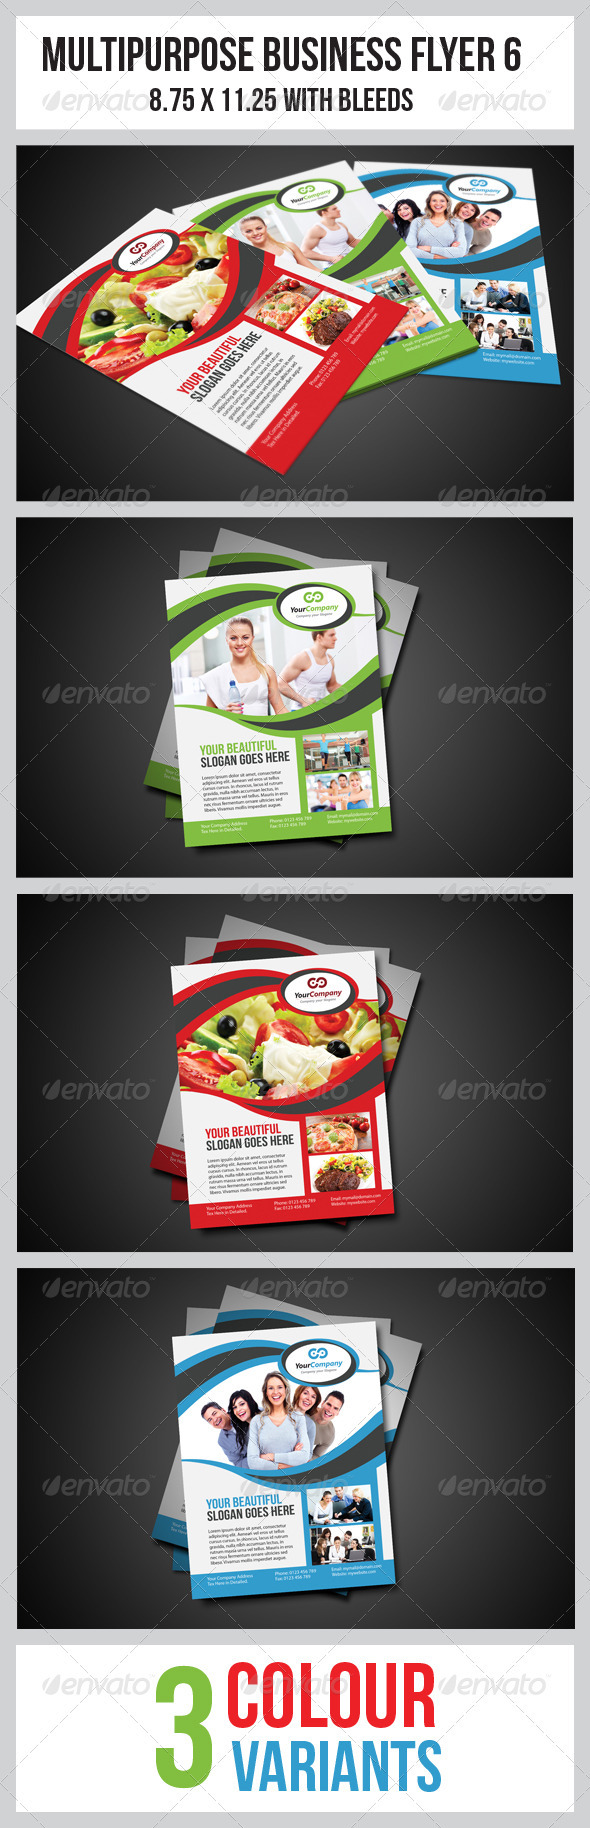 GraphicRiver Multipurpose Business Flyer 6 3476282